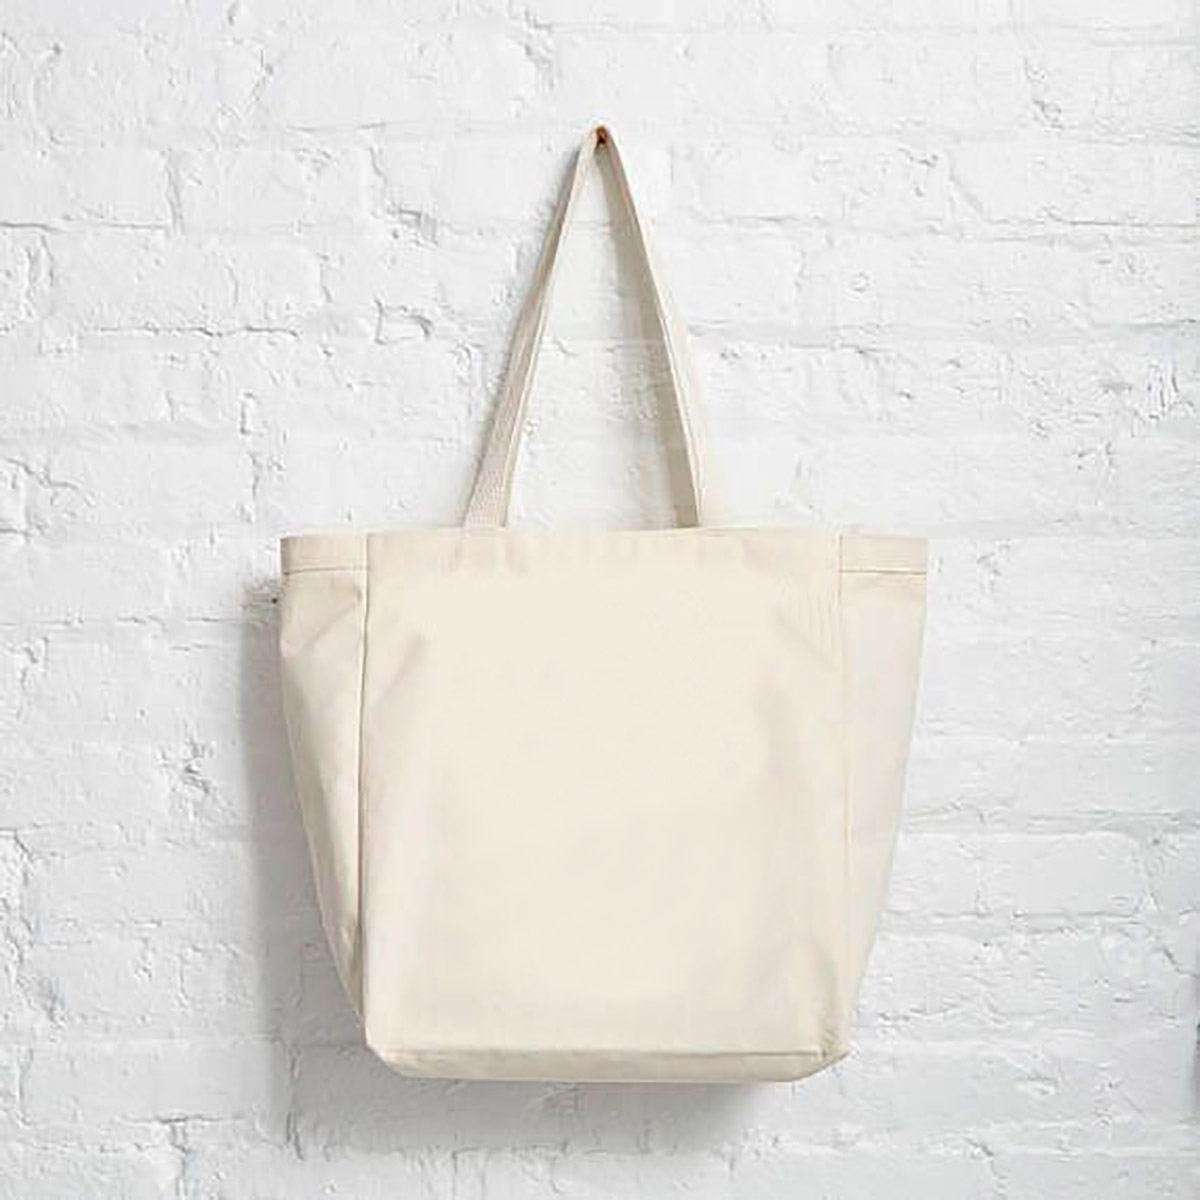 Stylish reusable cotton grocery bags